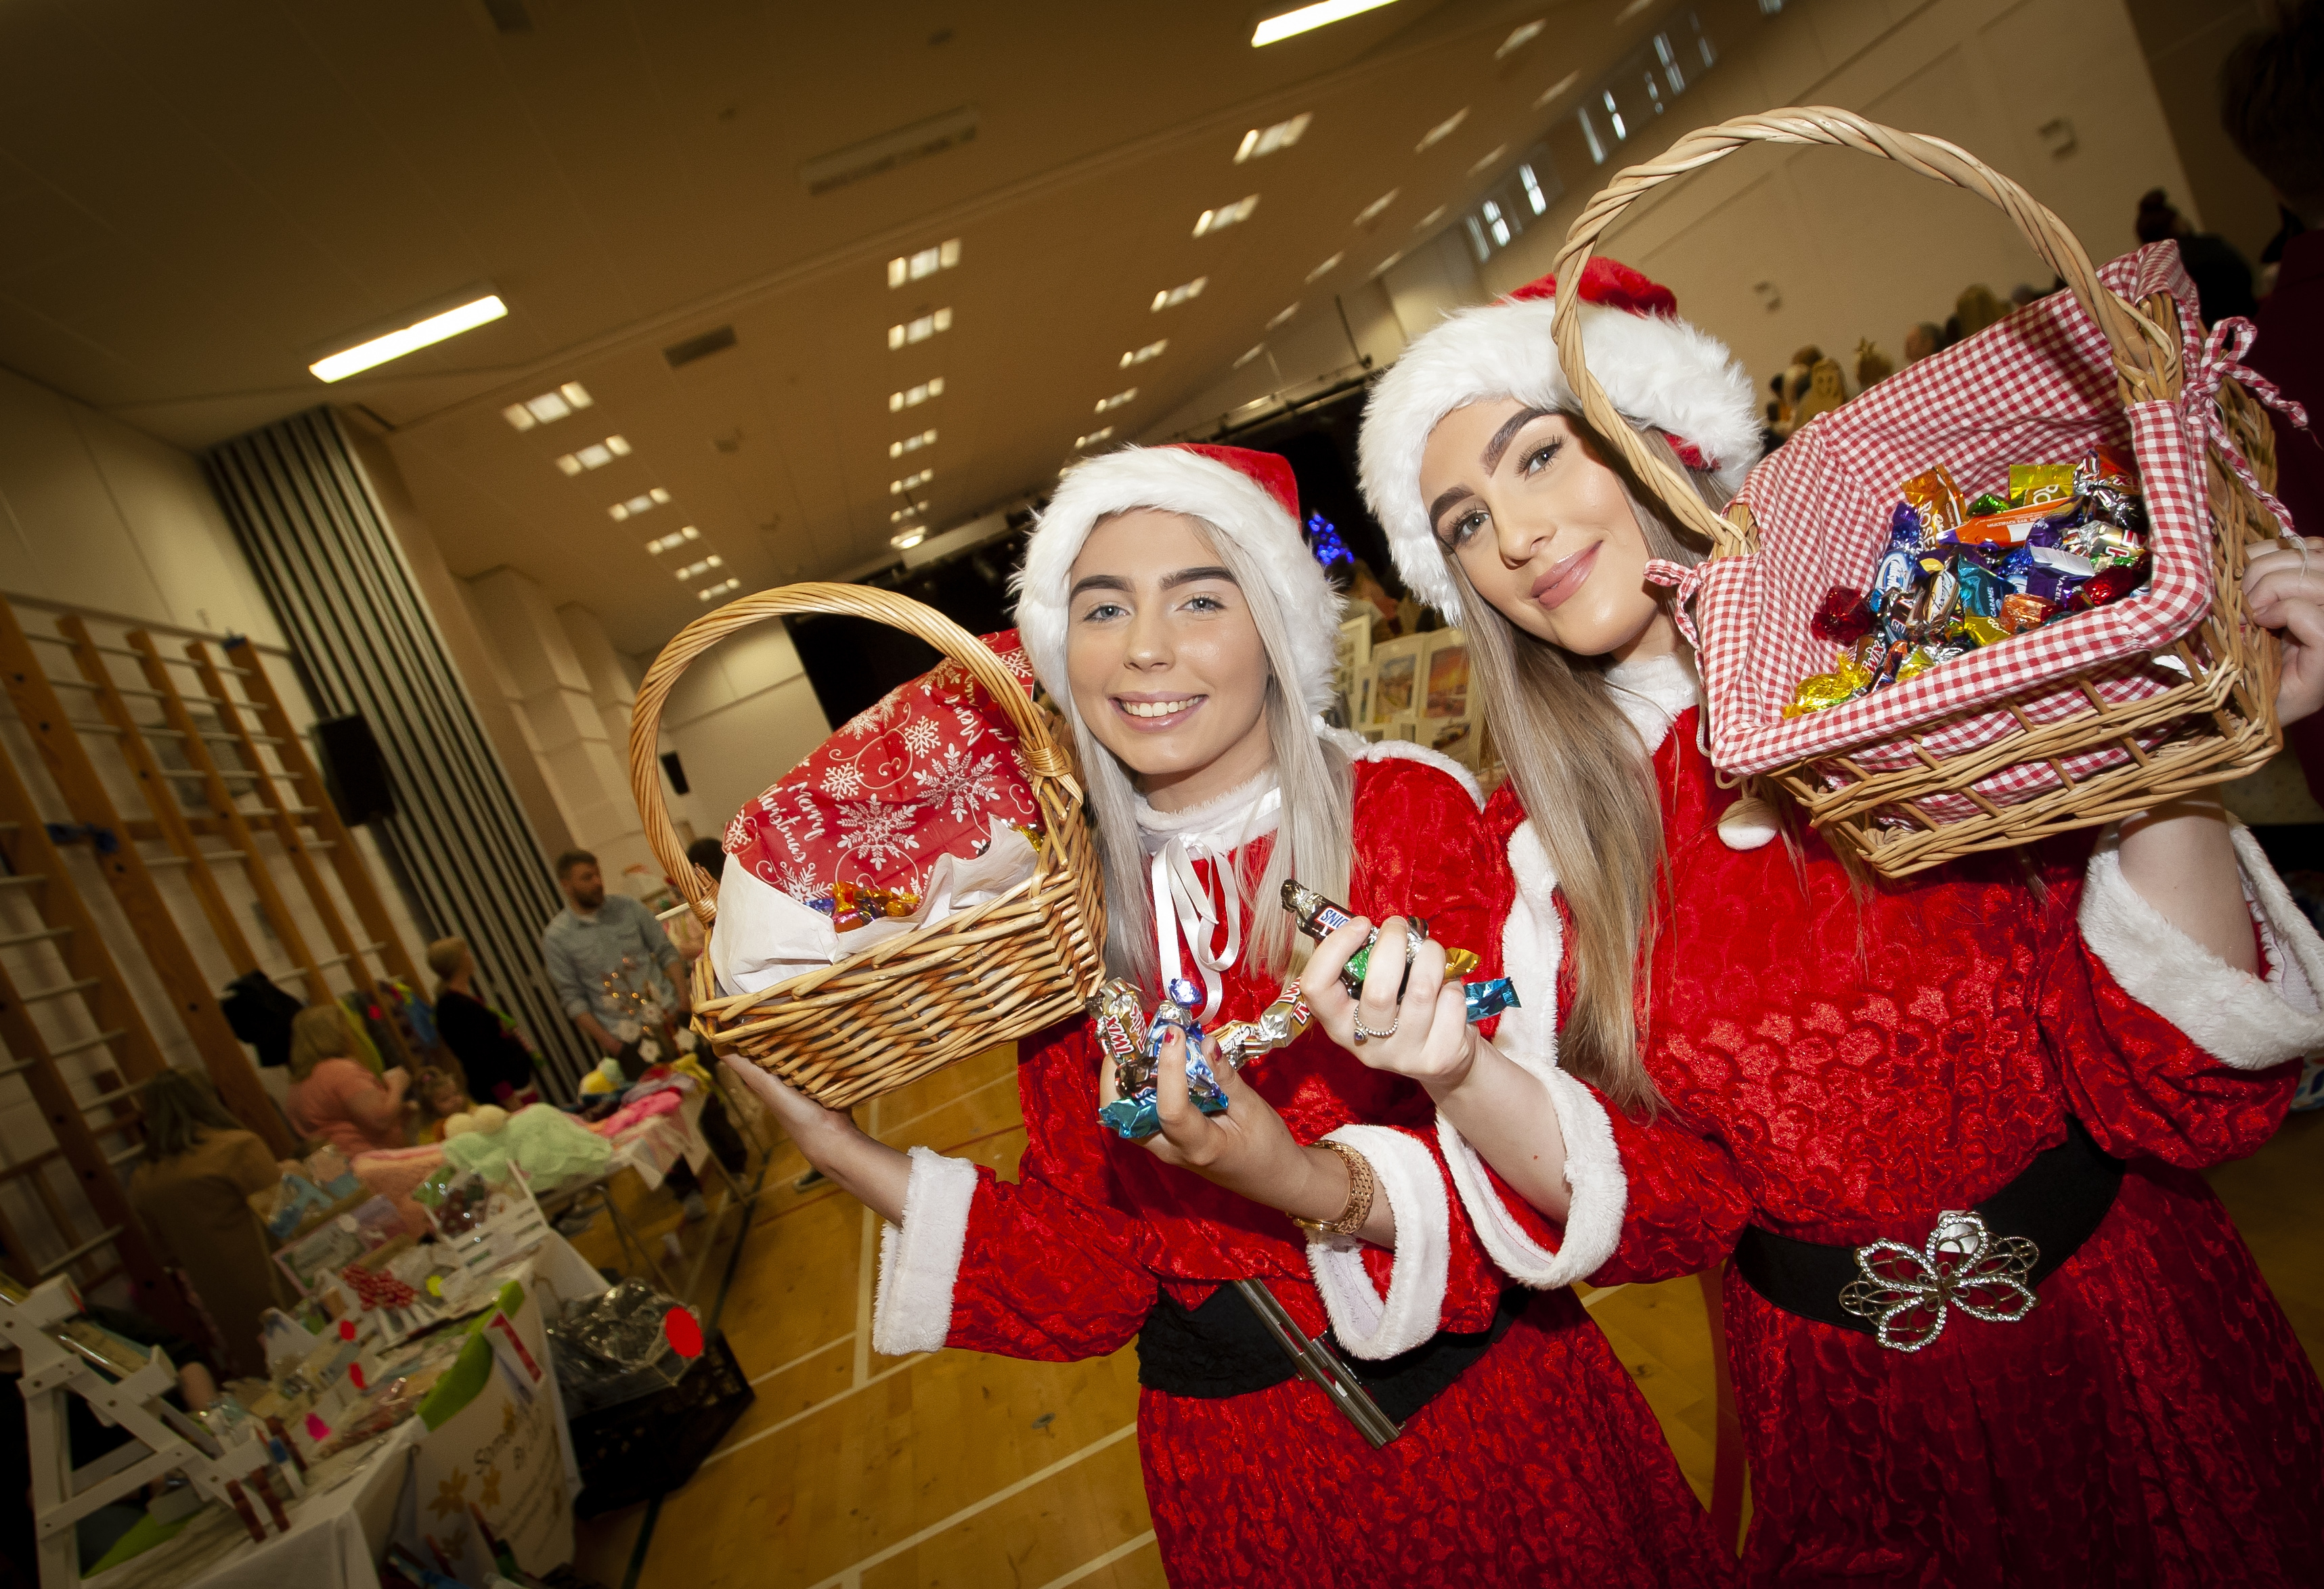 SAnta's Little Helpers Kellie Maxwell and Oshiana McAdams pictured handing out sweets during Saturday's St. Mary's Annual Christmas Craft Fair at the school. (Photos: jim McCafferty Photography)